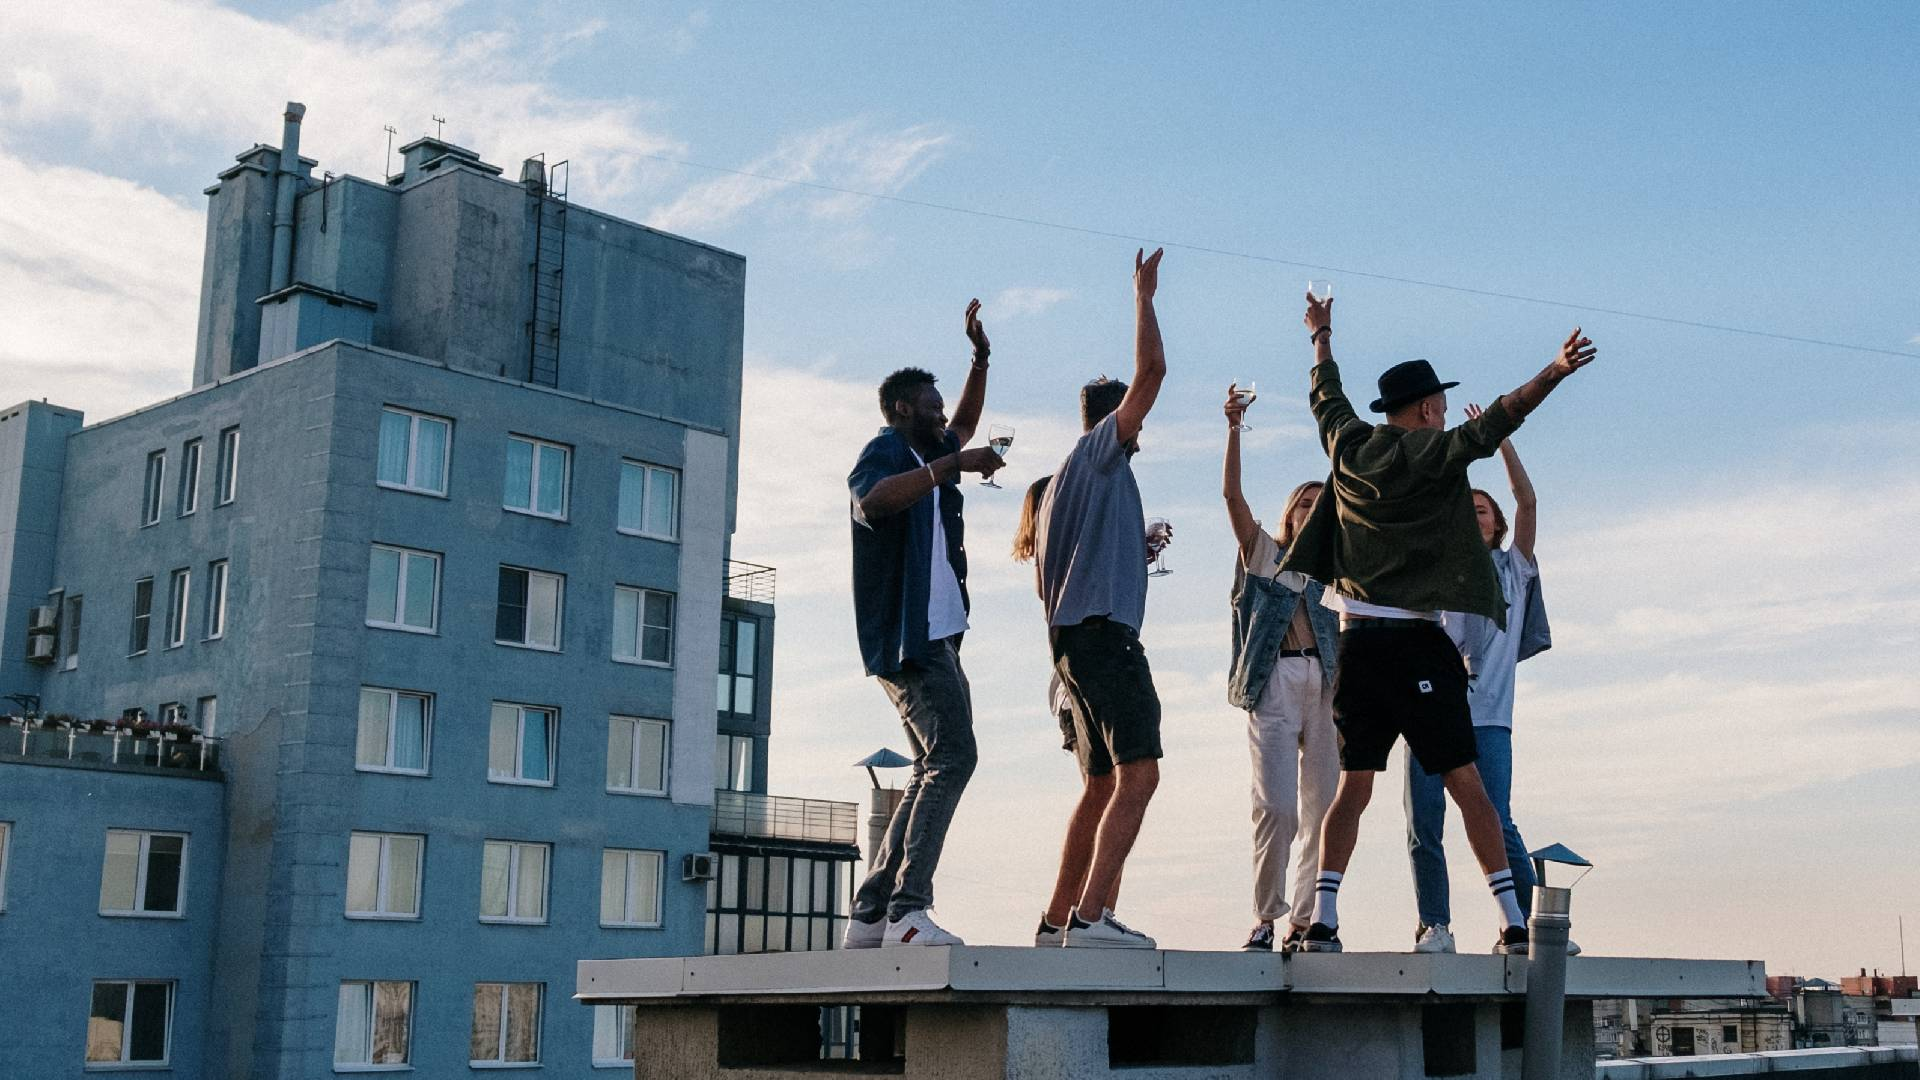 A group of friends celebrate on a rooftop.